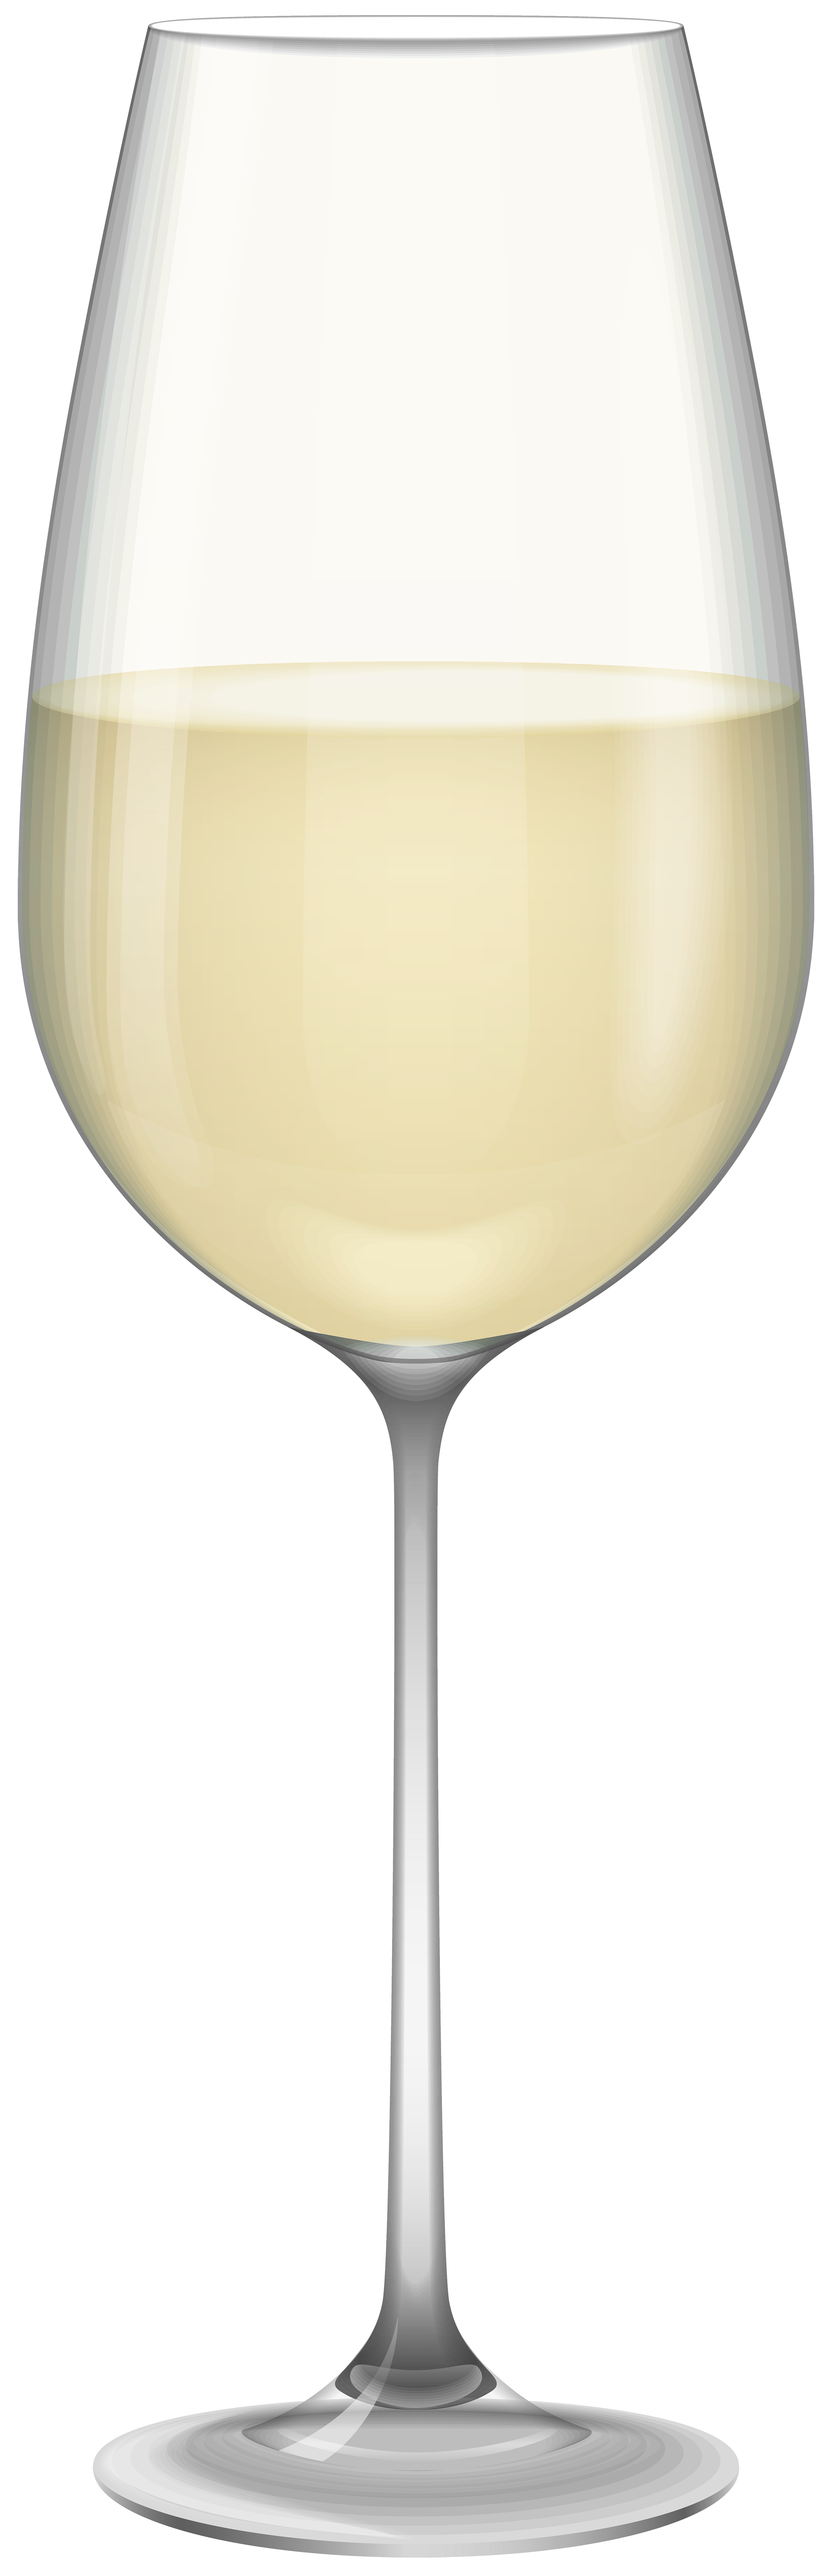 1356 Wine Glass free clipart.